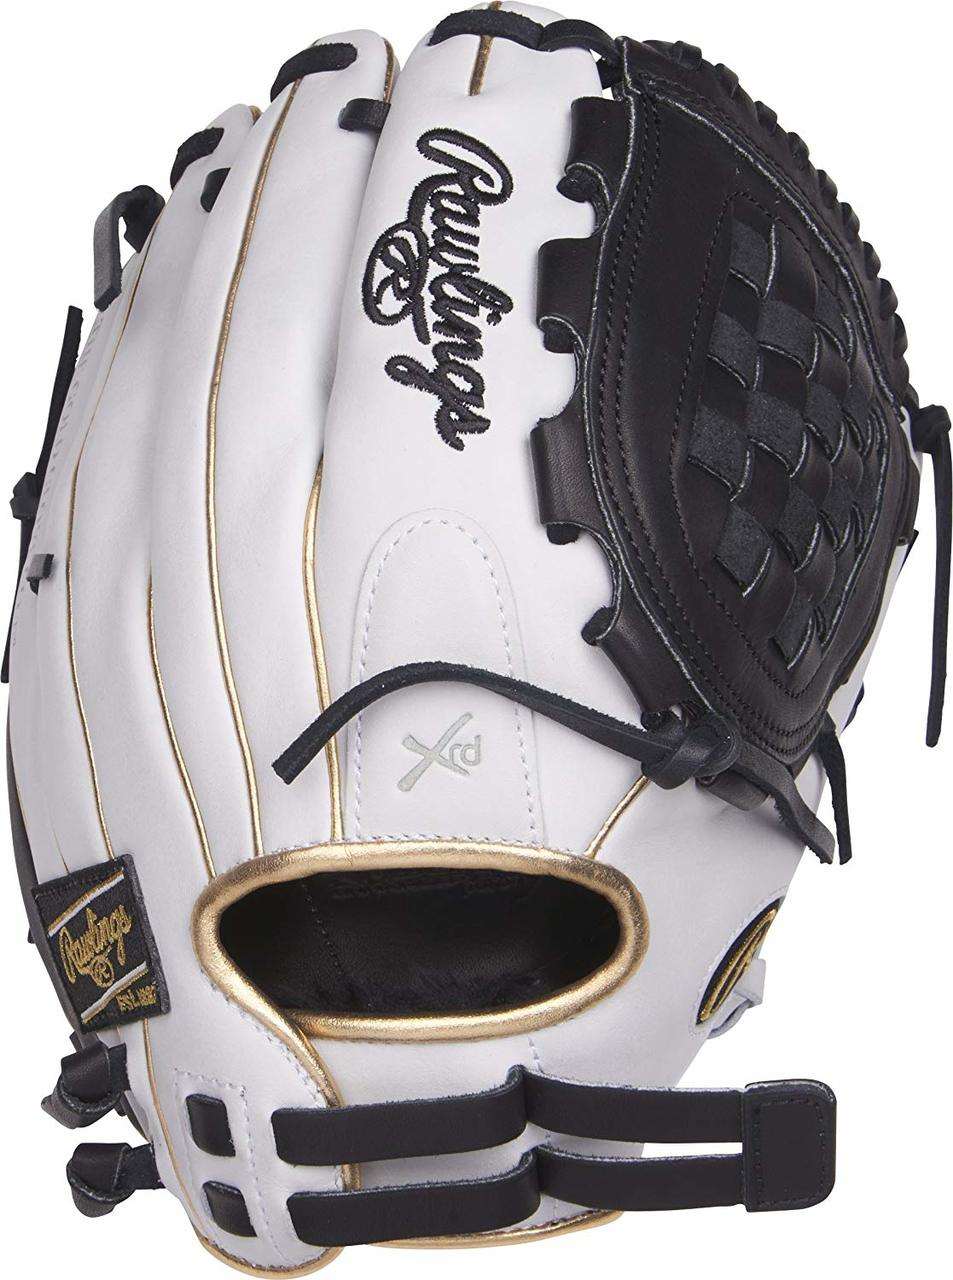 rawlings-liberty-advanced-rla120-3wbg-fastpitch-softball-glove-12-right-hand-throw RLA120-3WBG-RightHandThrow  083321435416 Limited Edition Color Series - White/Black/Gold Colorway 12 Inch Womens Model